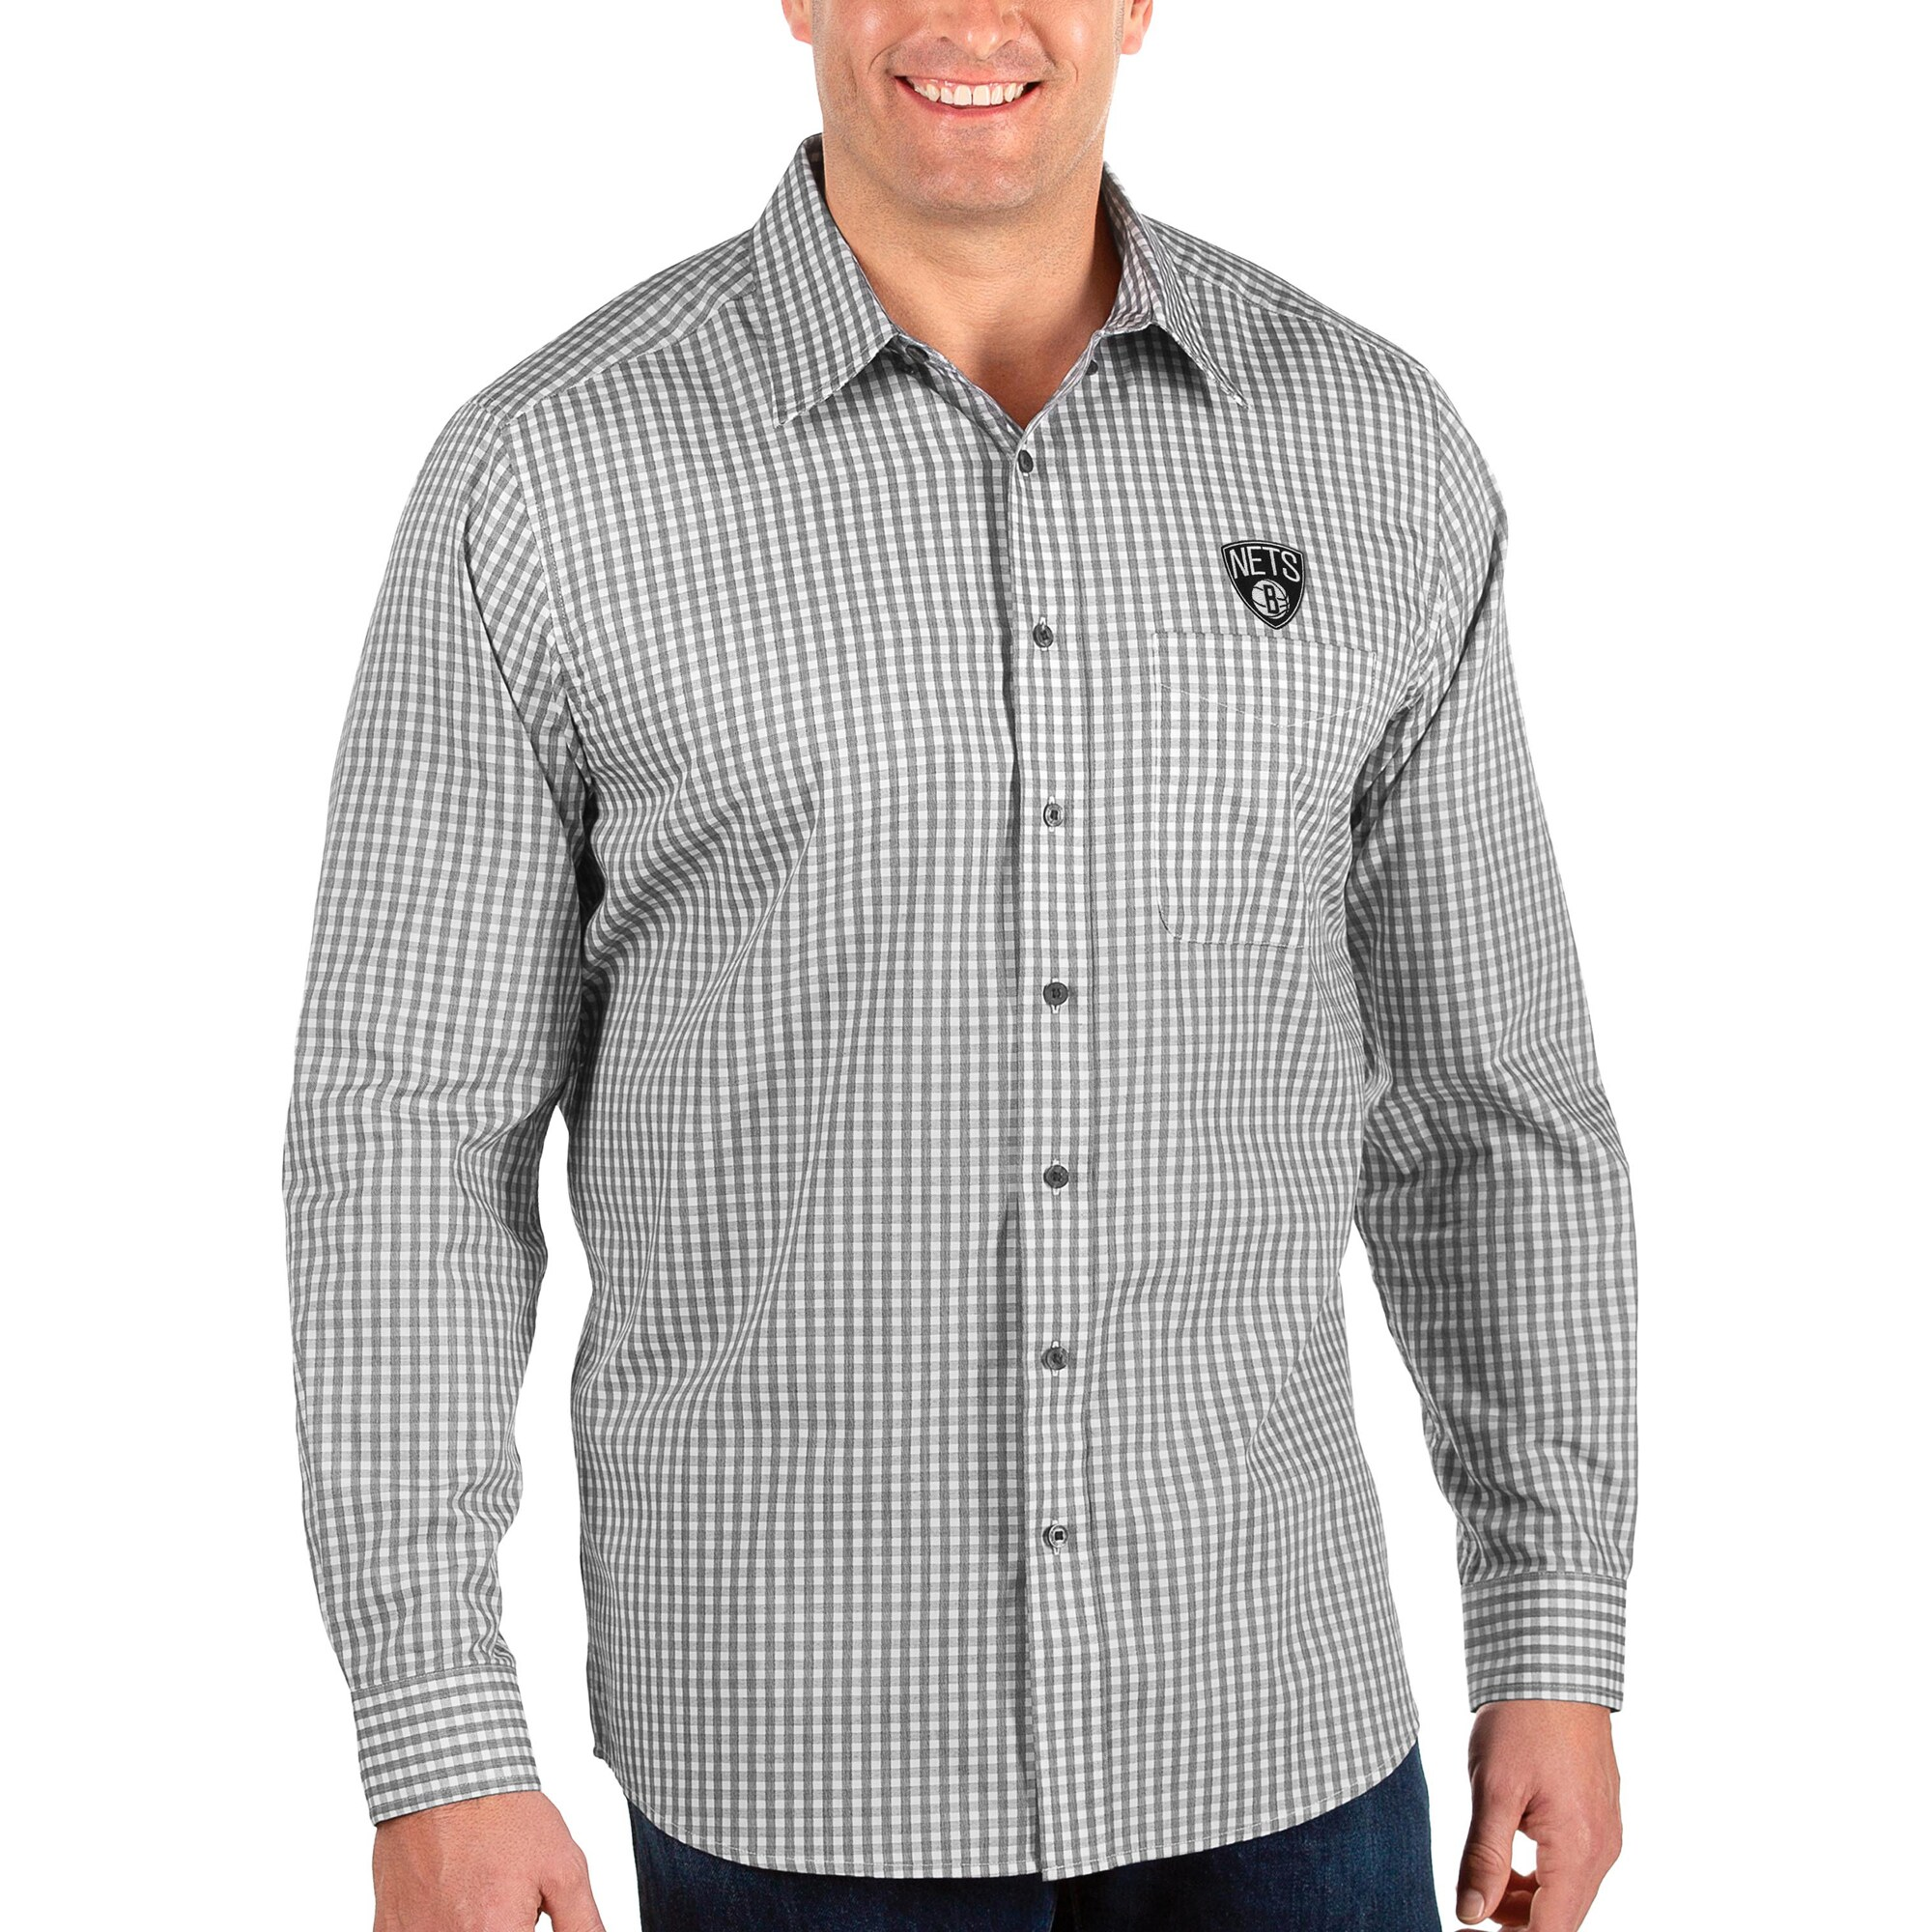 Brooklyn Nets Antigua Big & Tall Structure Long Sleeve Button-Up Shirt - Black/White